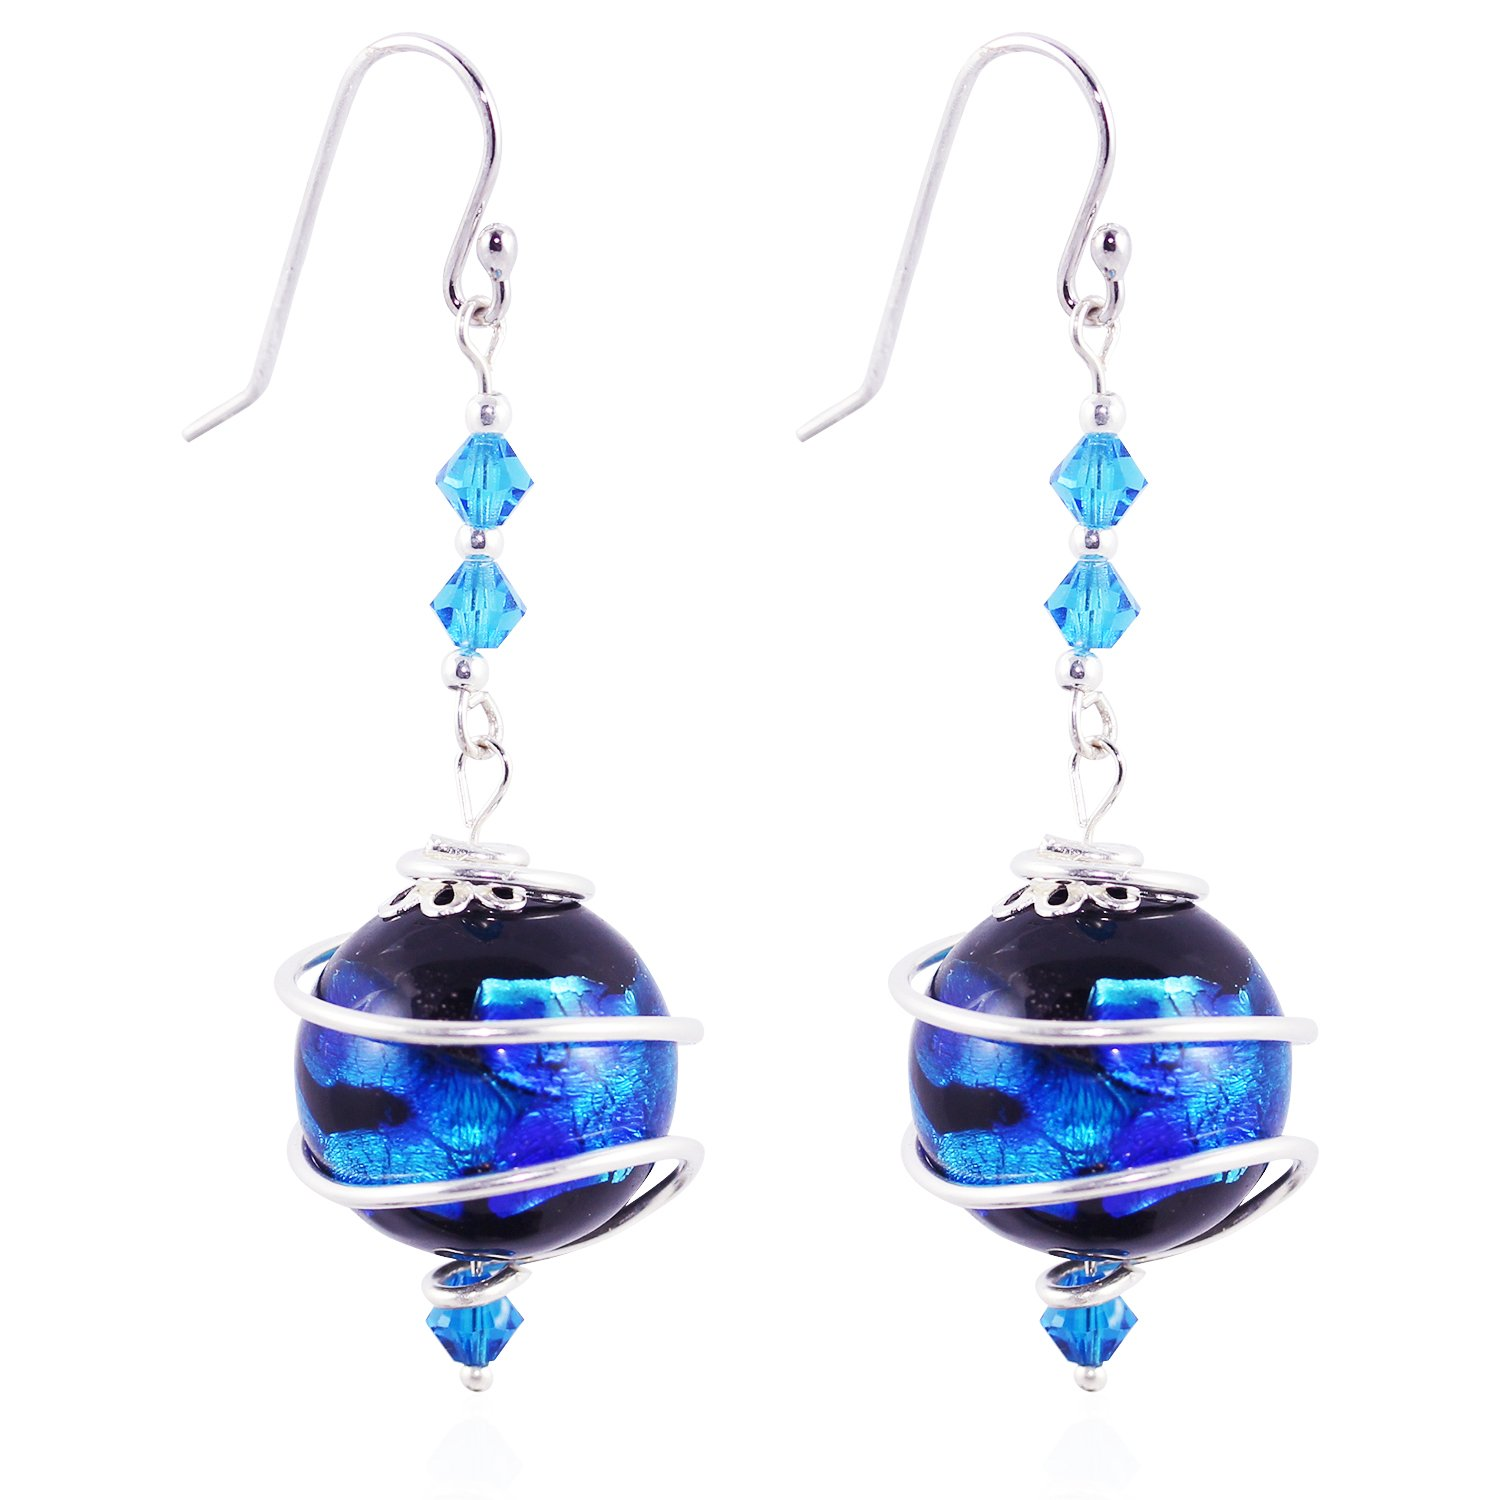 CewanCe handmade Blue Japan's style Glass Beads Jewelry Drop Earrings With Swarovski Elements crystals (ear10-Blue)